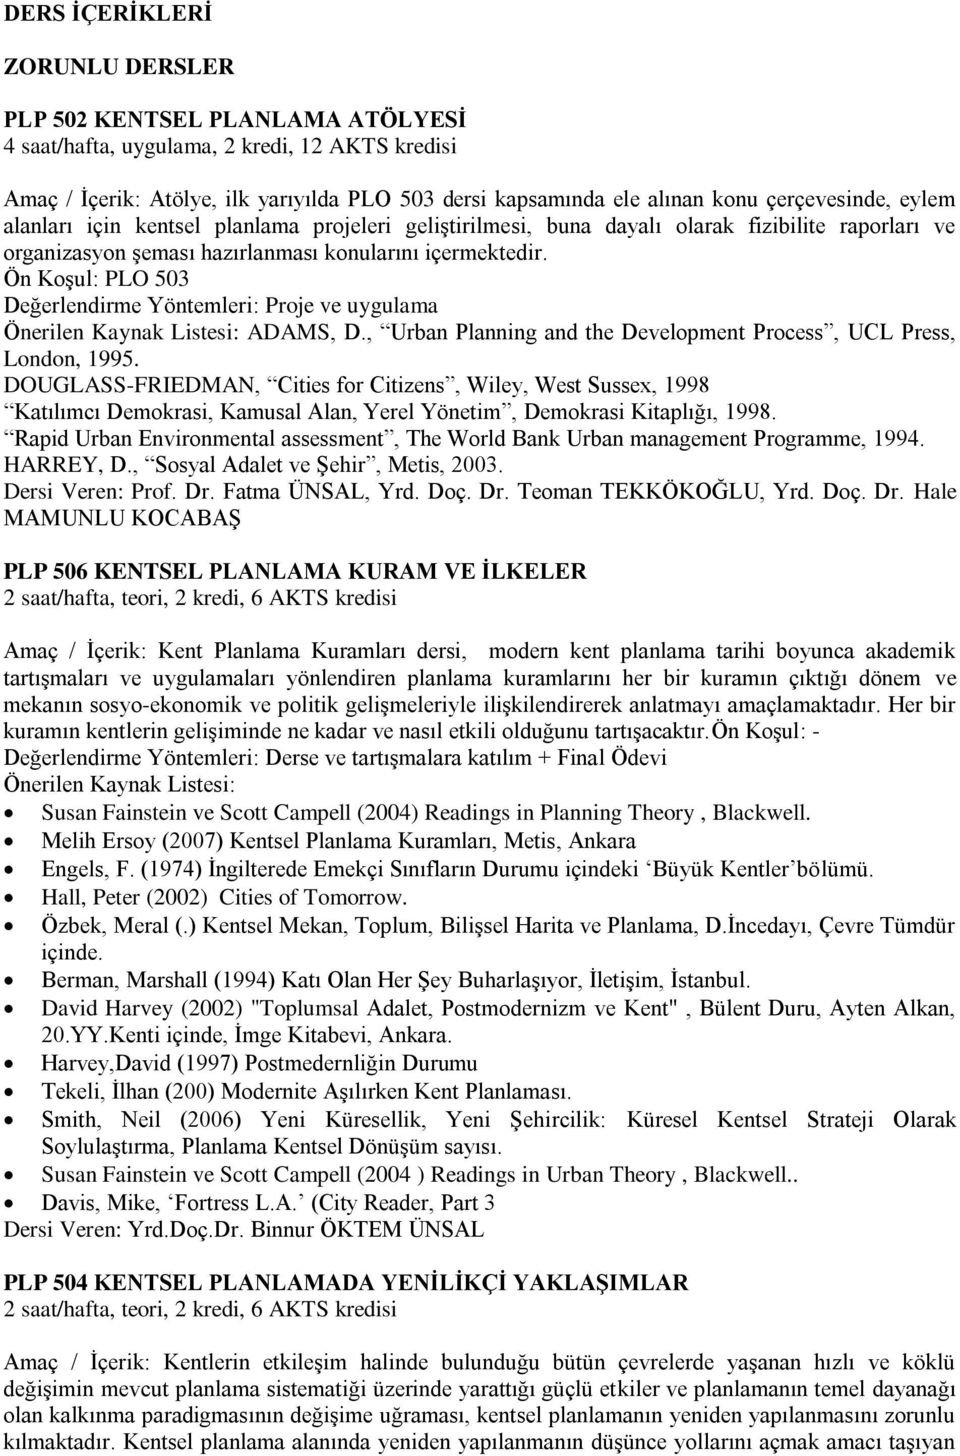 Ön Koşul: PLO 503 Değerlendirme Yöntemleri: Proje ve uygulama ADAMS, D., Urban Planning and the Development Process, UCL Press, London, 1995.